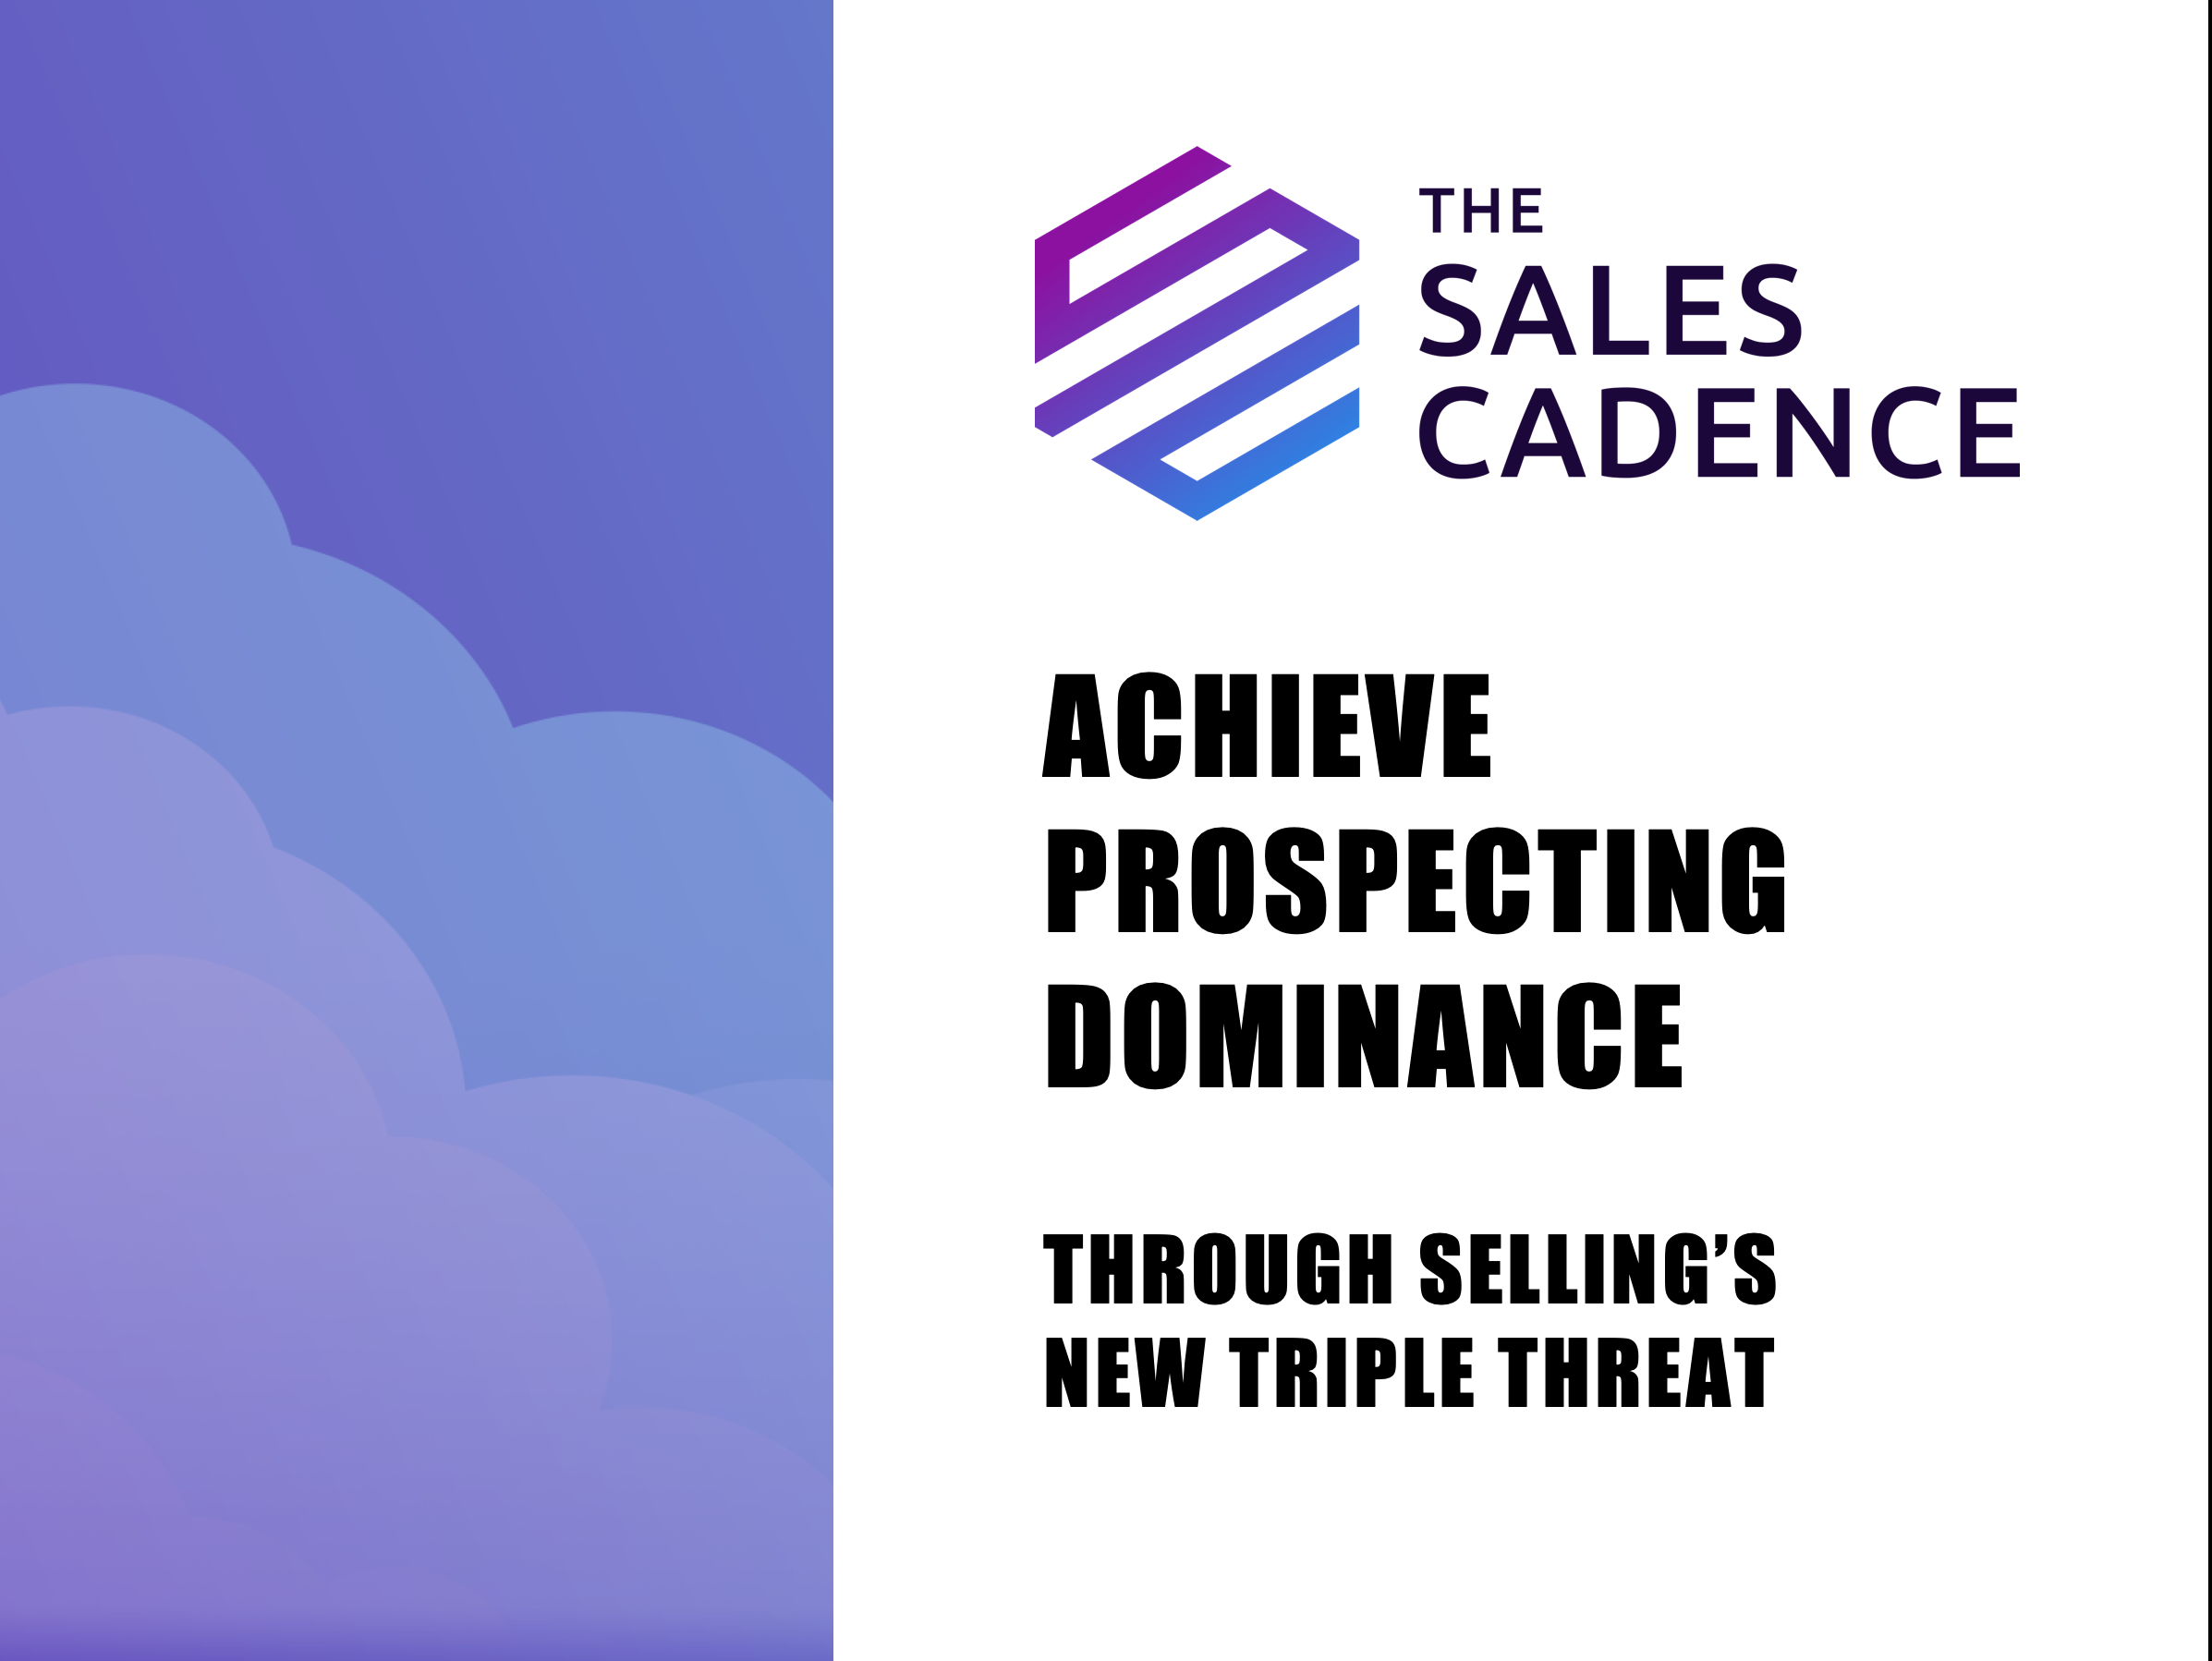 Achieve Prospecting Dominance through Selling's New Triple Threat